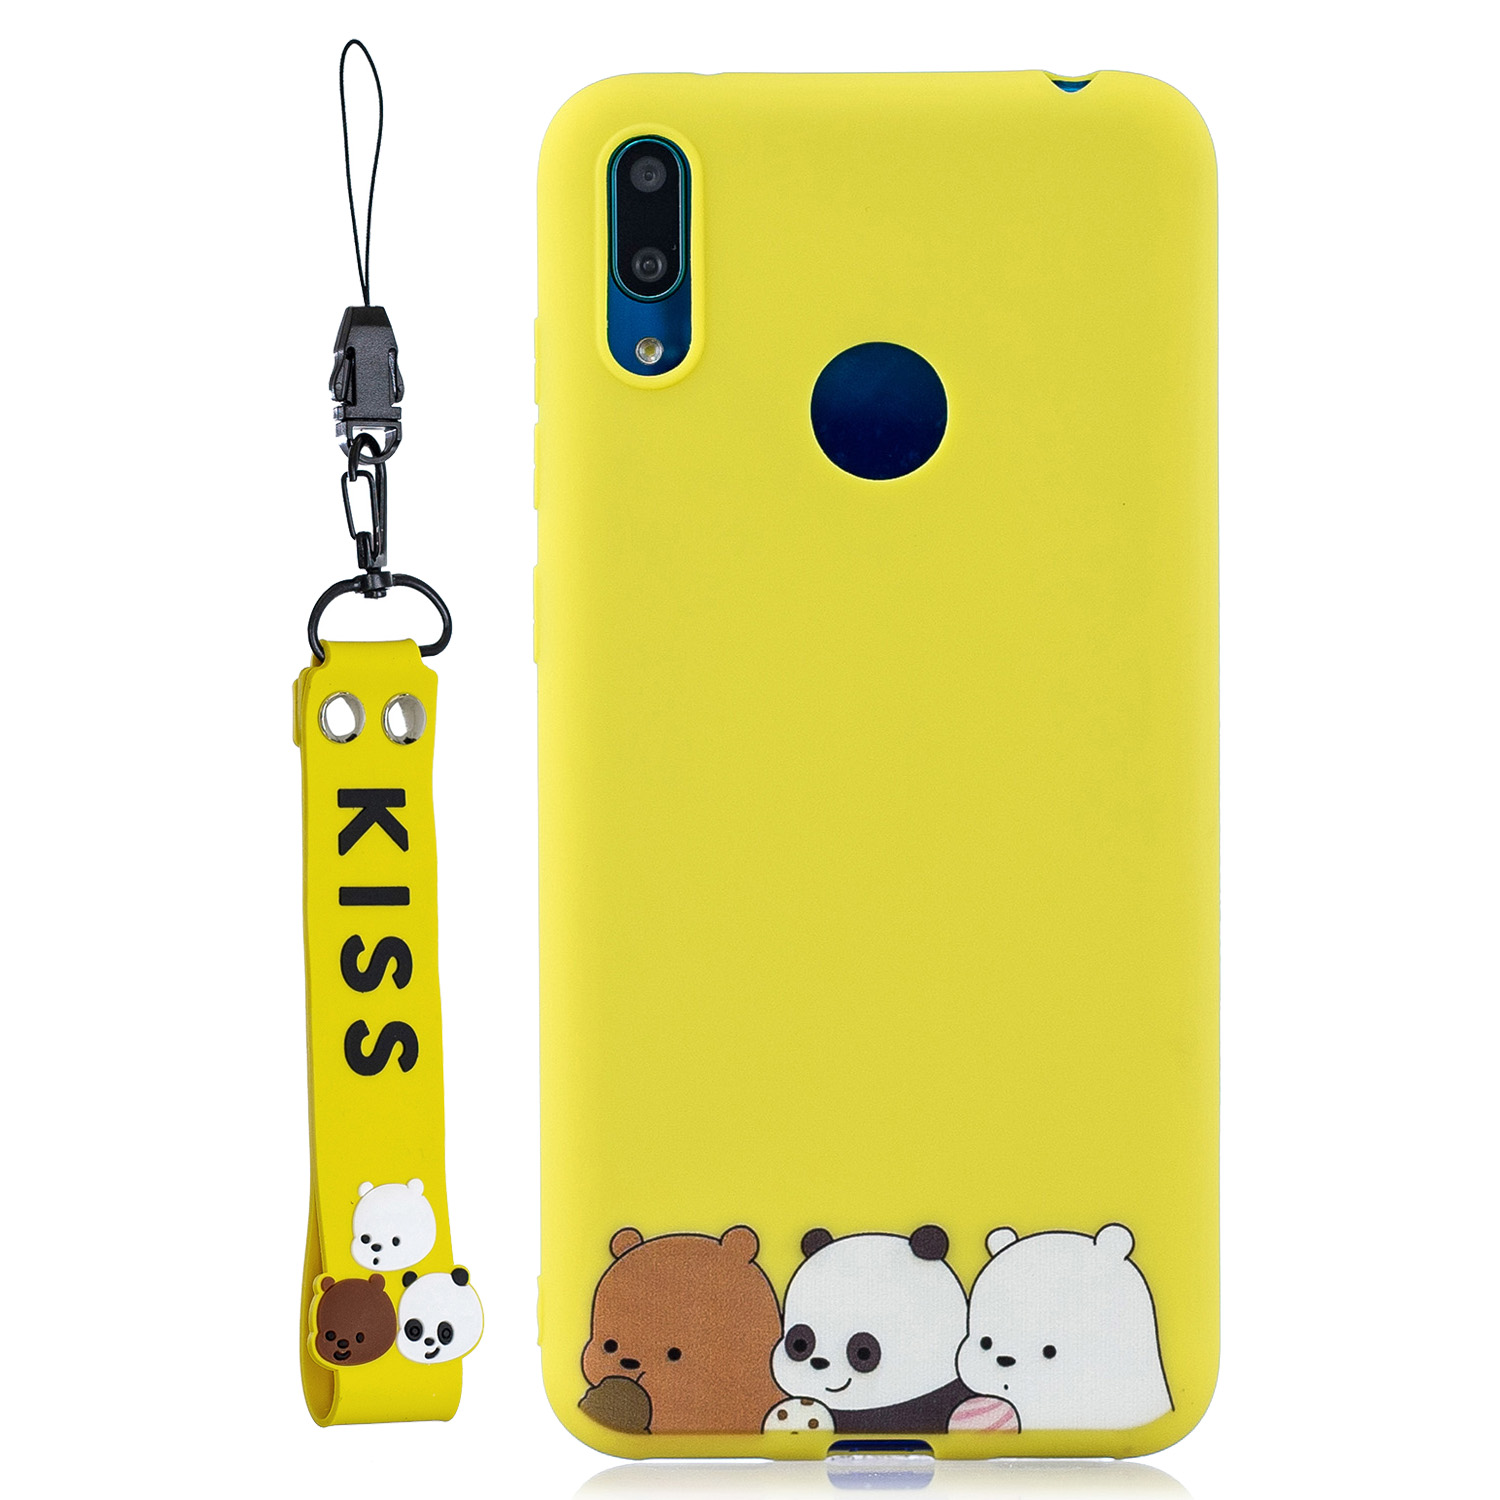 For HUAWEI Y7 2019 Cute Coloured Painted TPU Anti-scratch Non-slip Protective Cover Back Case with Lanyard yellow